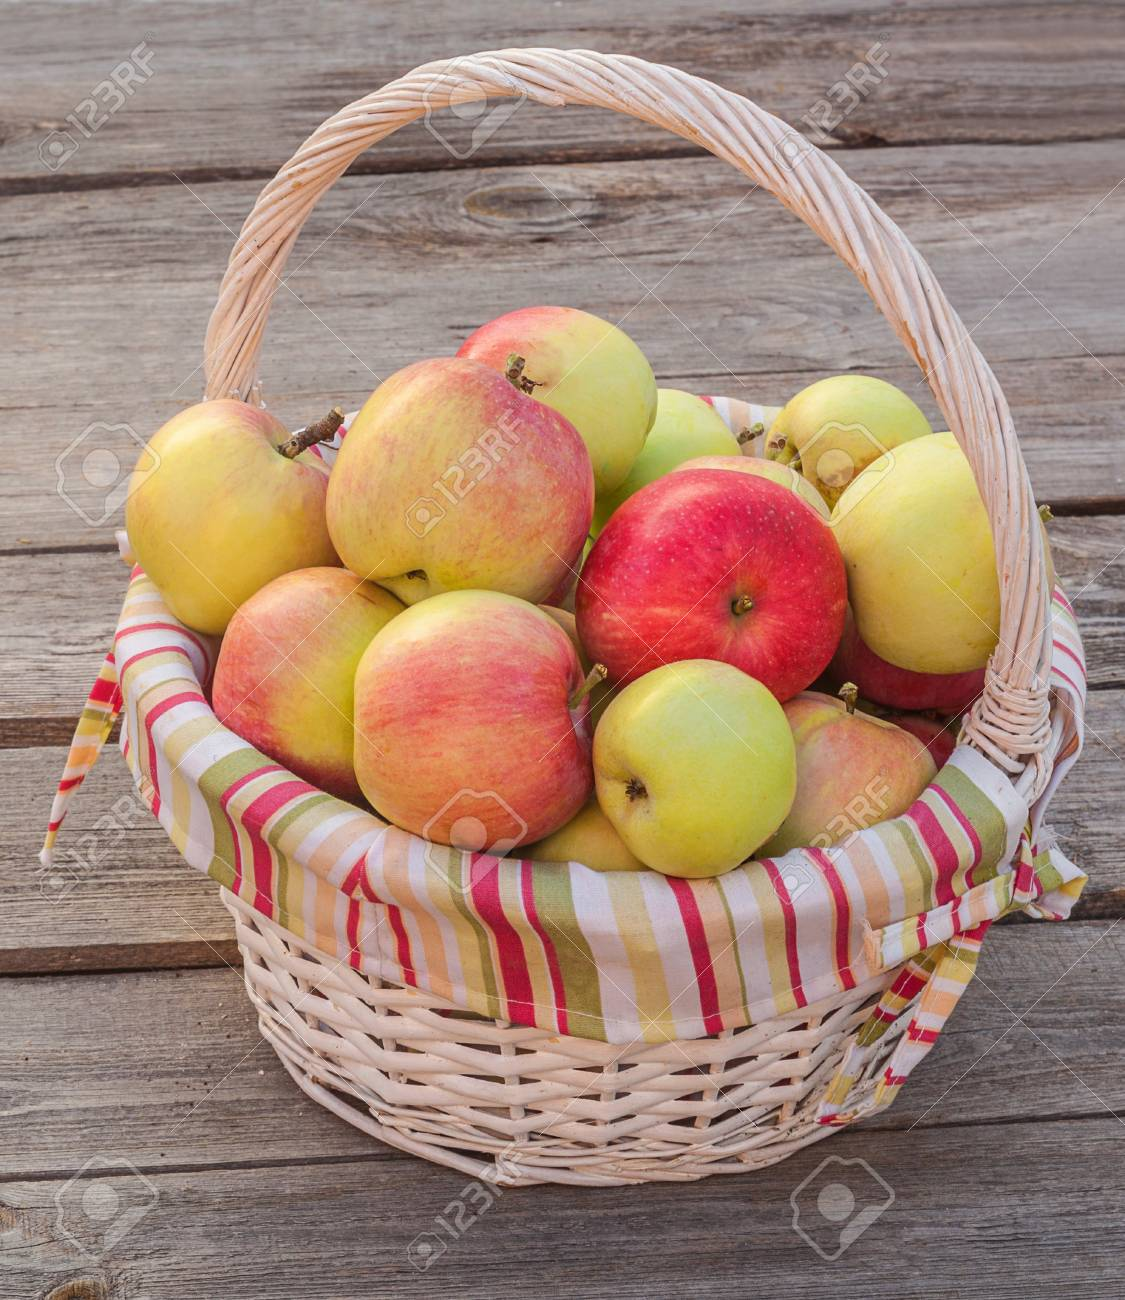 the basket of apples